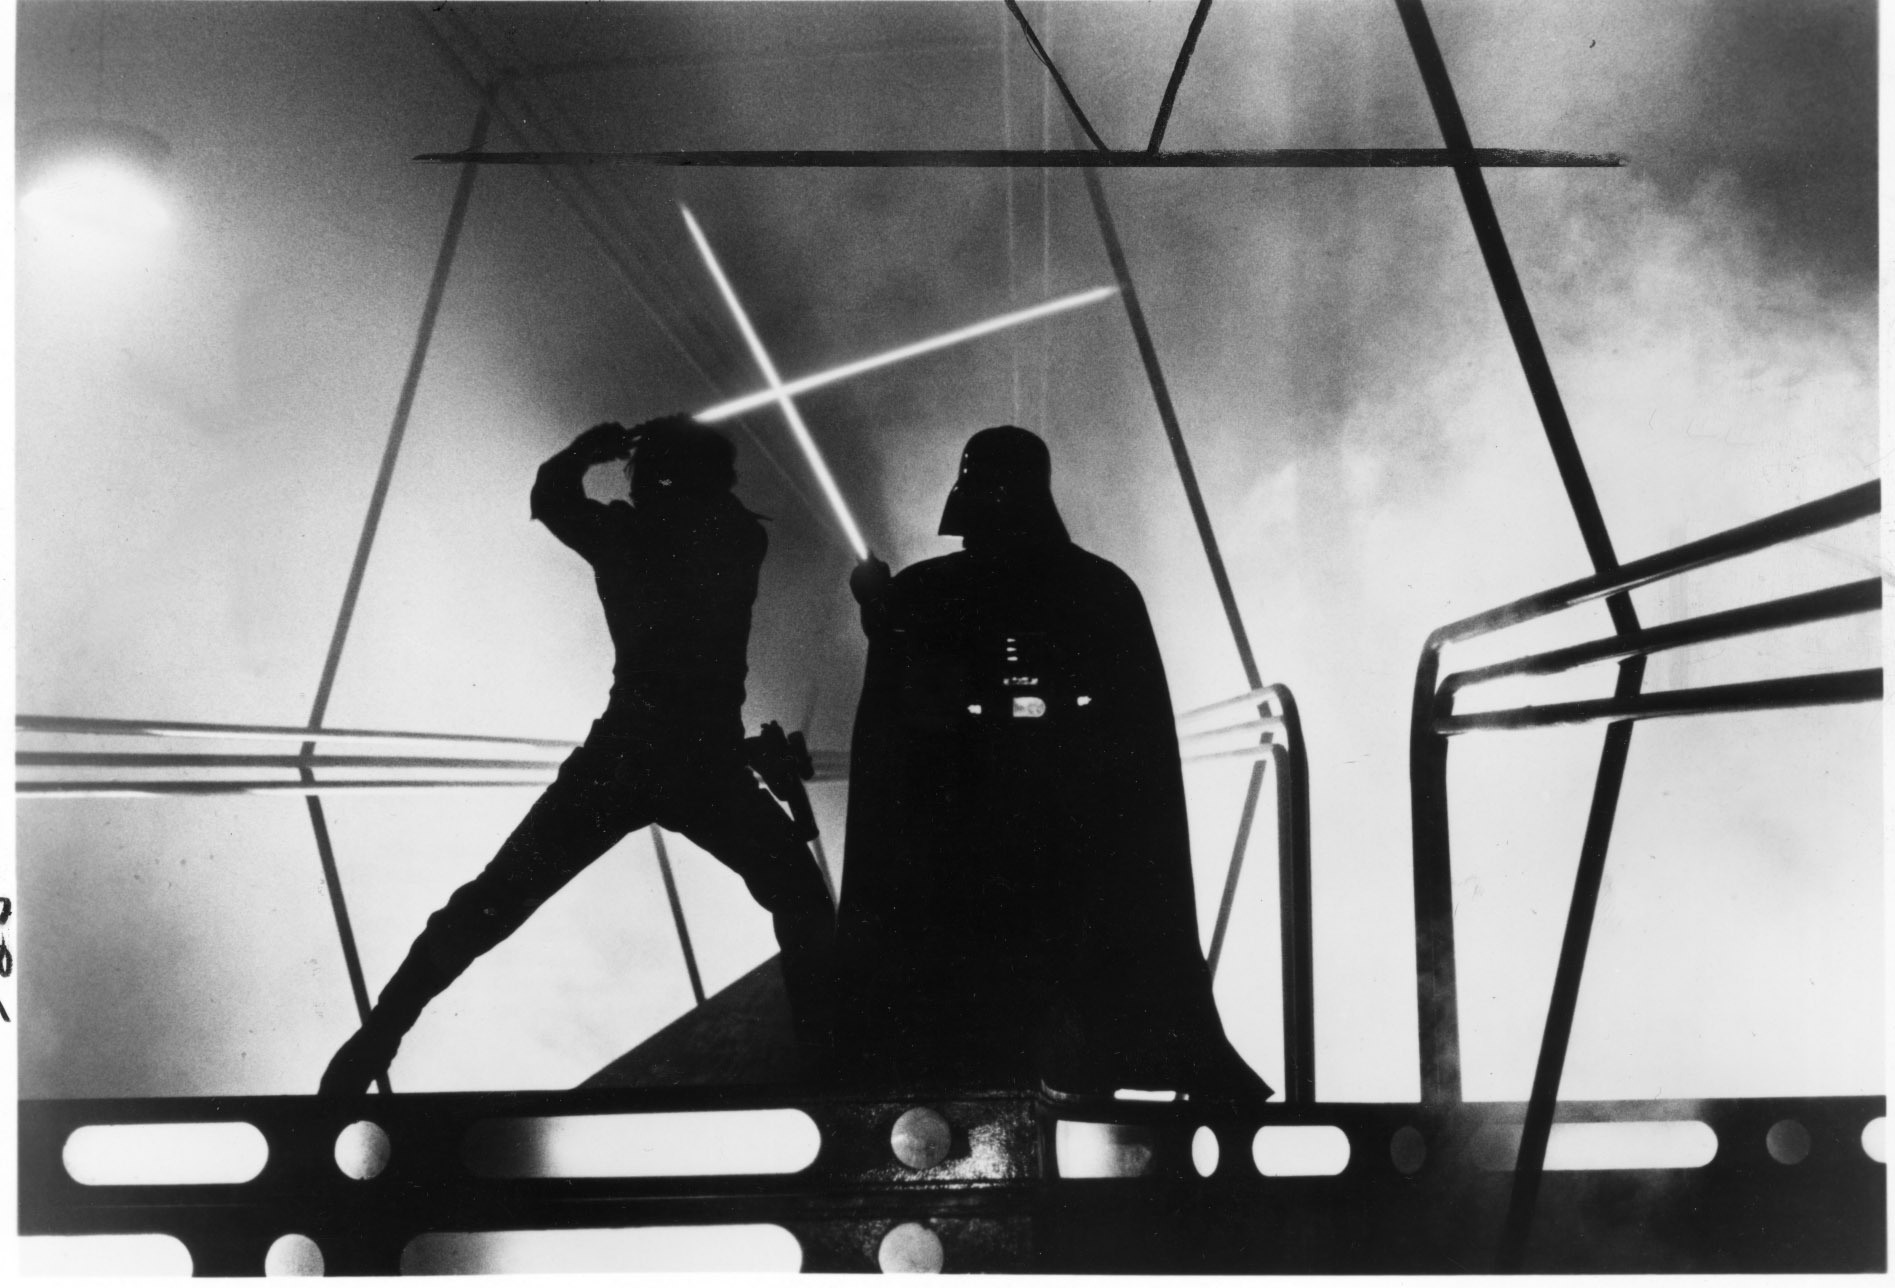 Luke Skywalker (played by Mark Hamill, at left) battles Darth Vader (played by David Prowse, right).